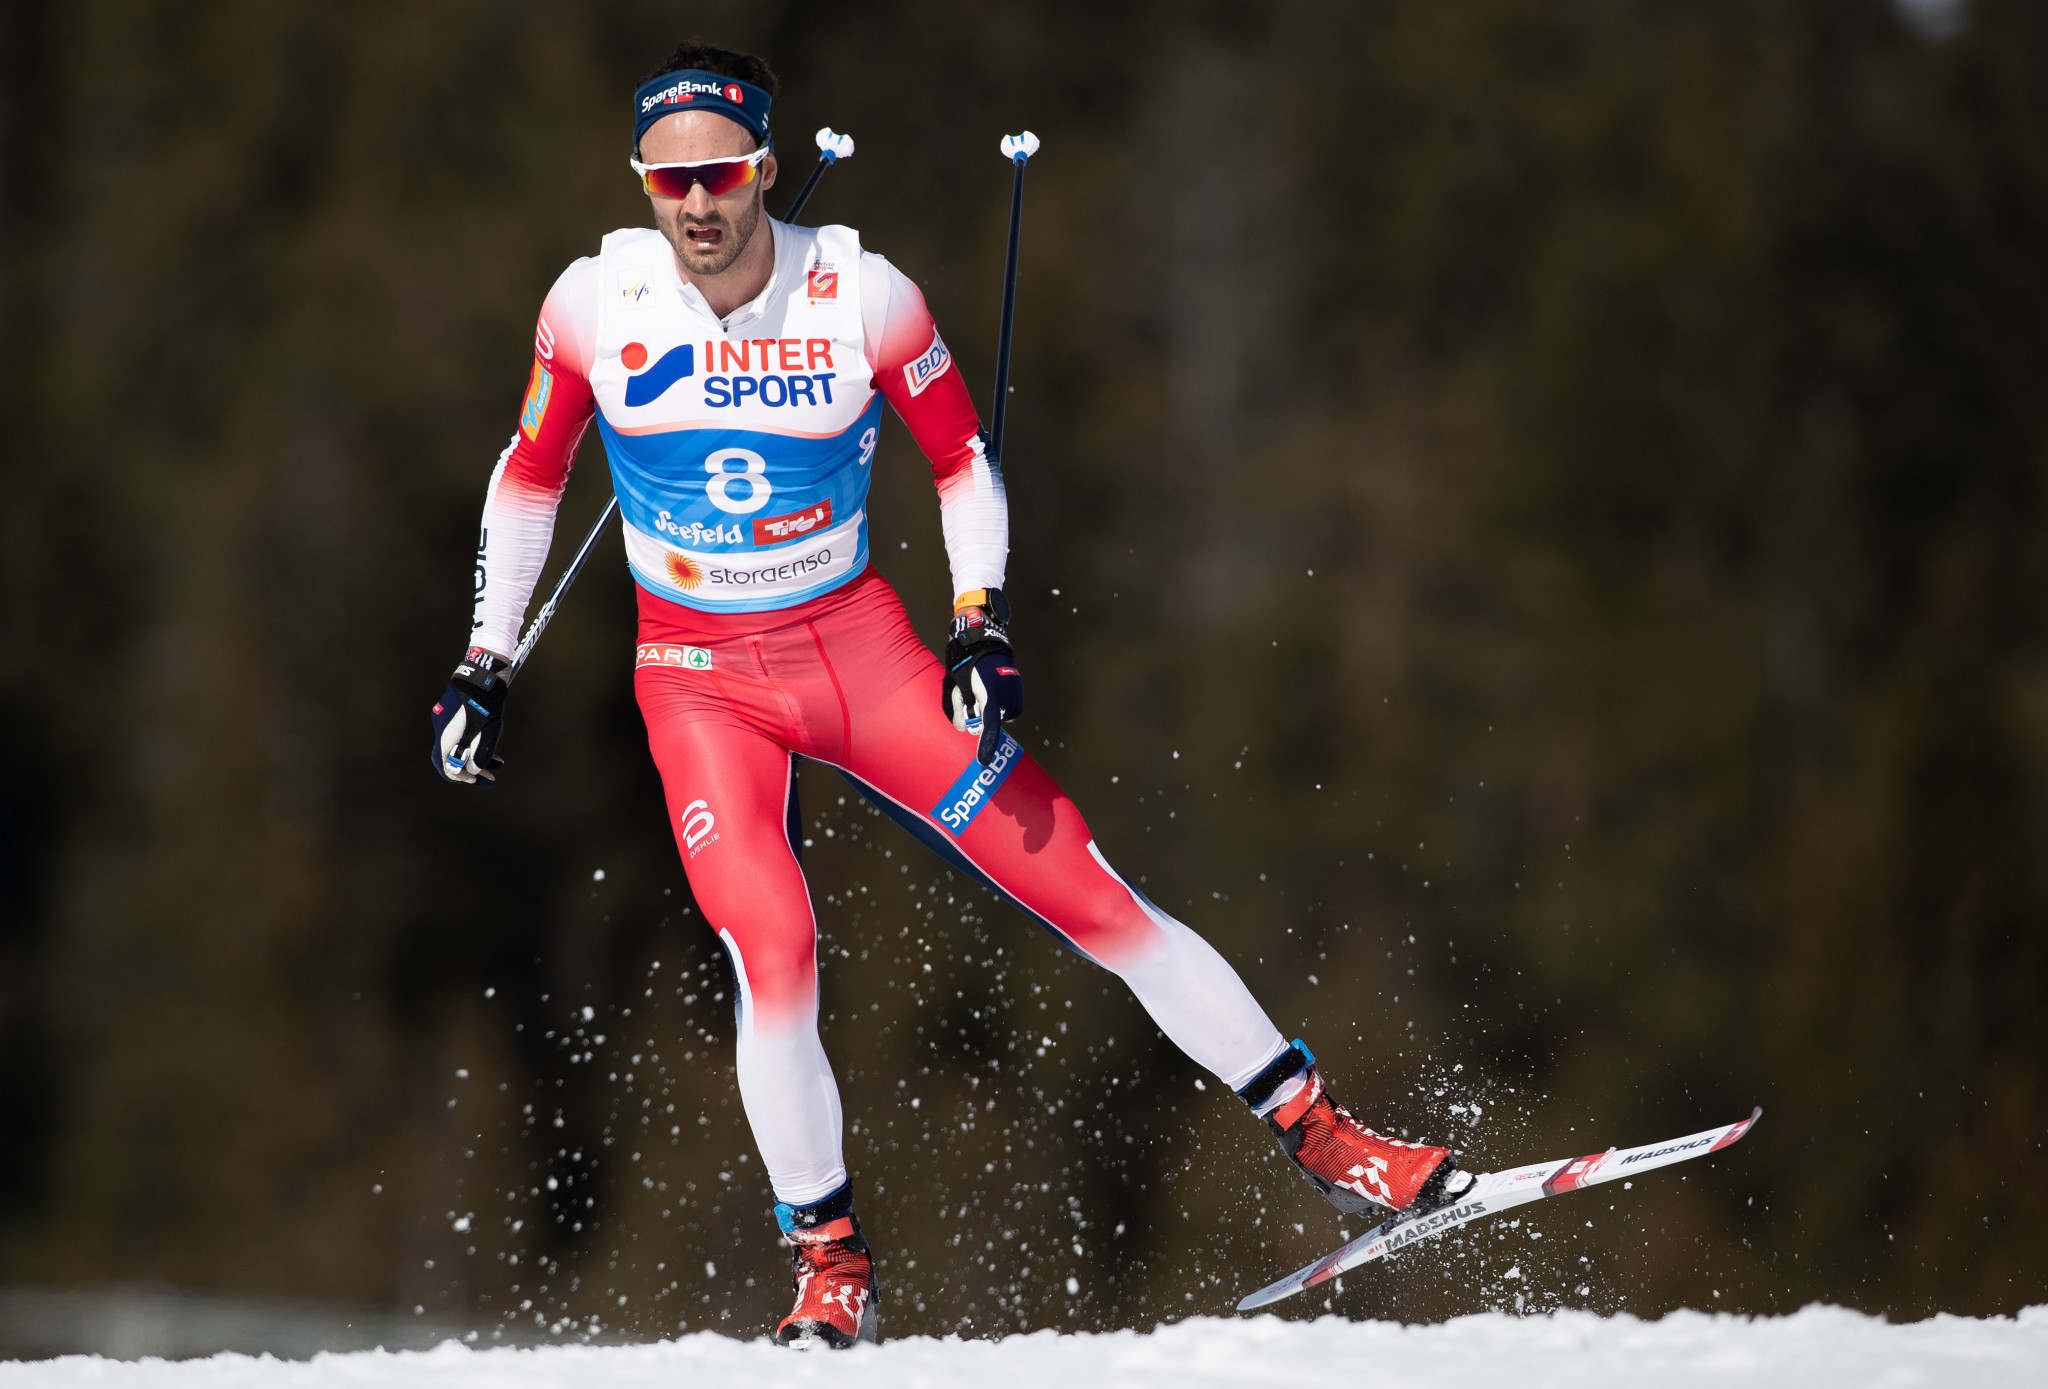 Hans Christer Holund caused an upset on the final day of the International Ski Federation Nordic World Ski Championships ©Getty Images